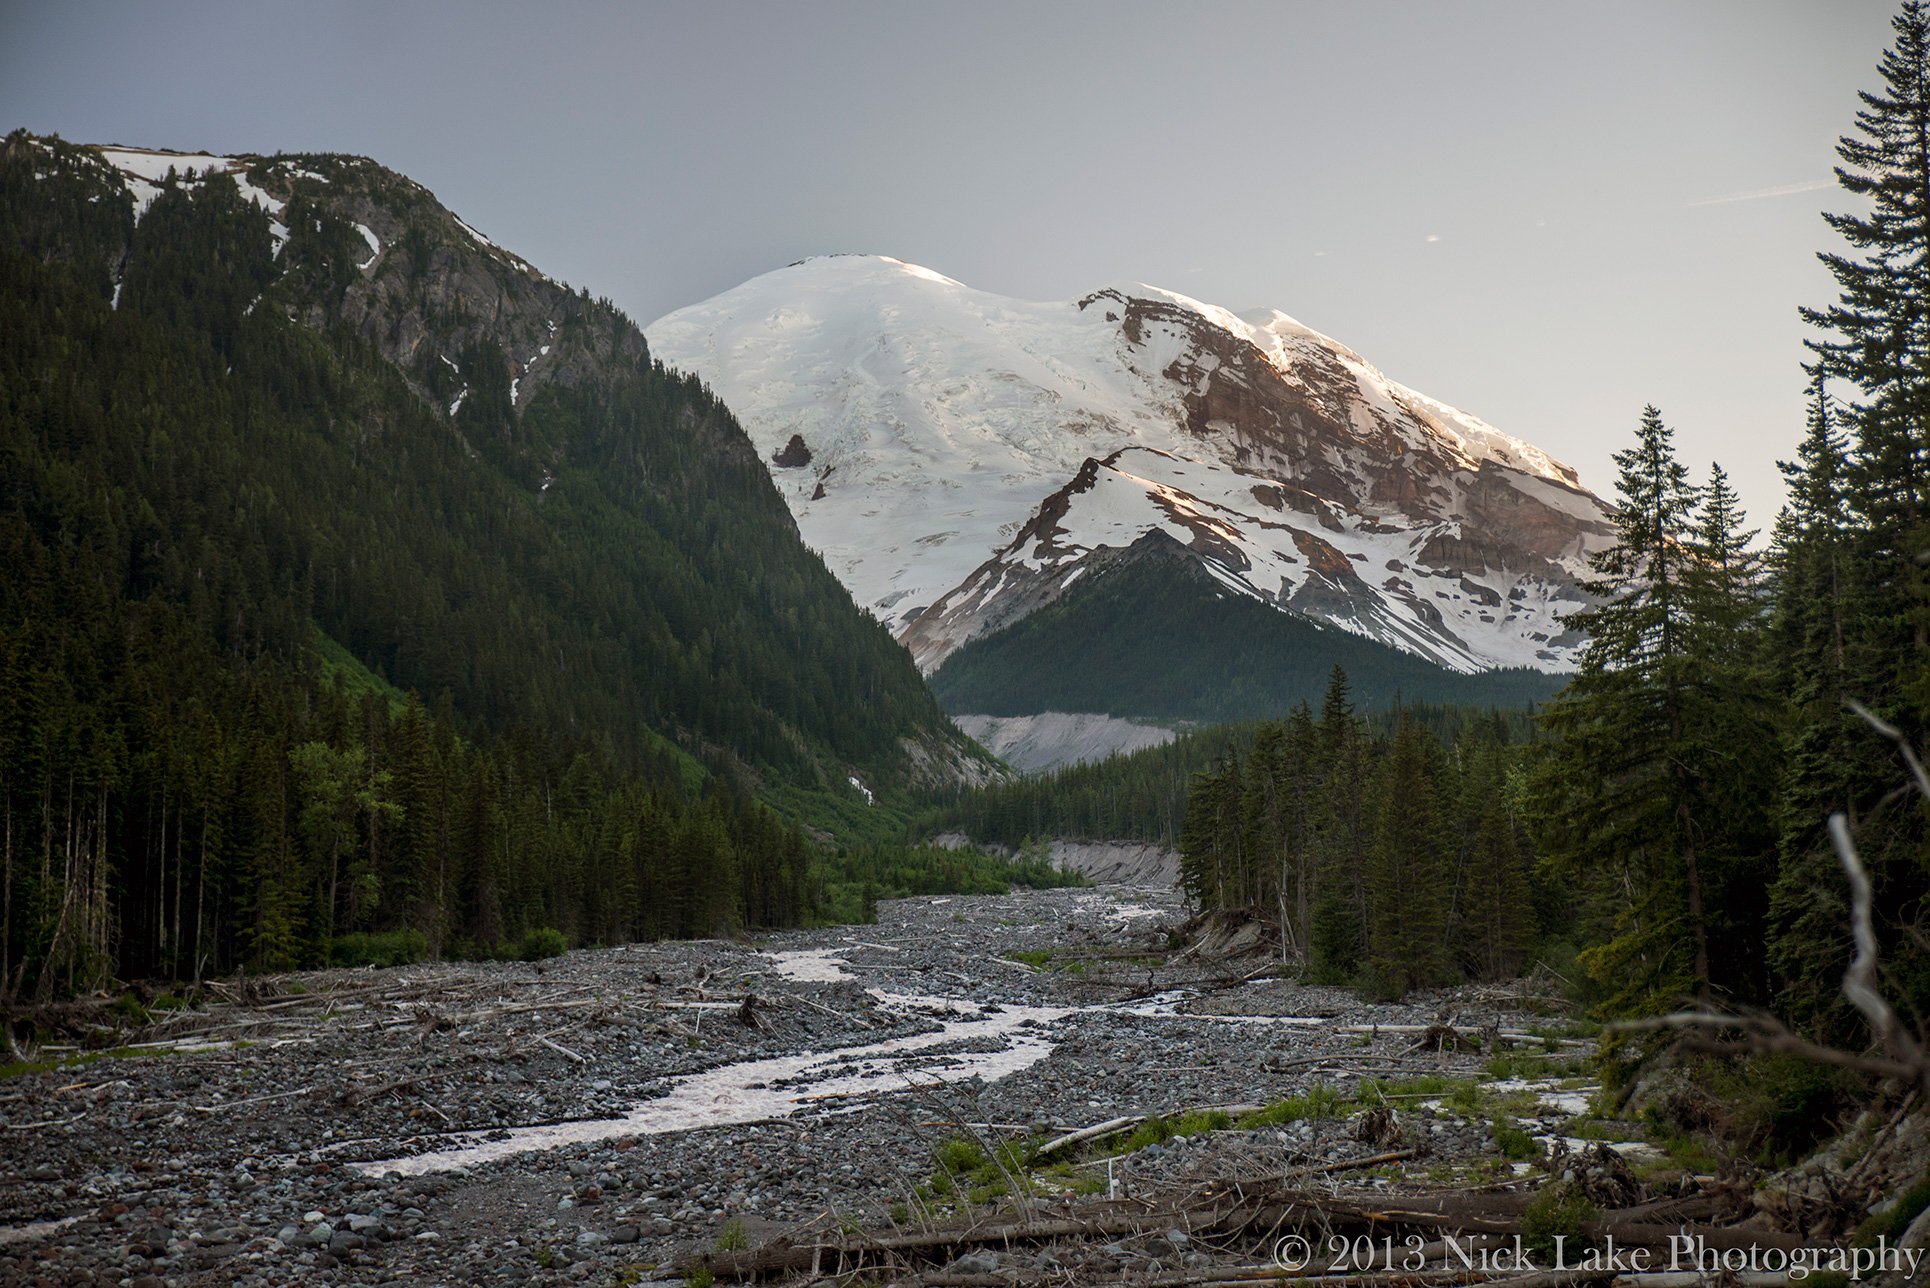 Mt. Rainier looms above White River at sunset